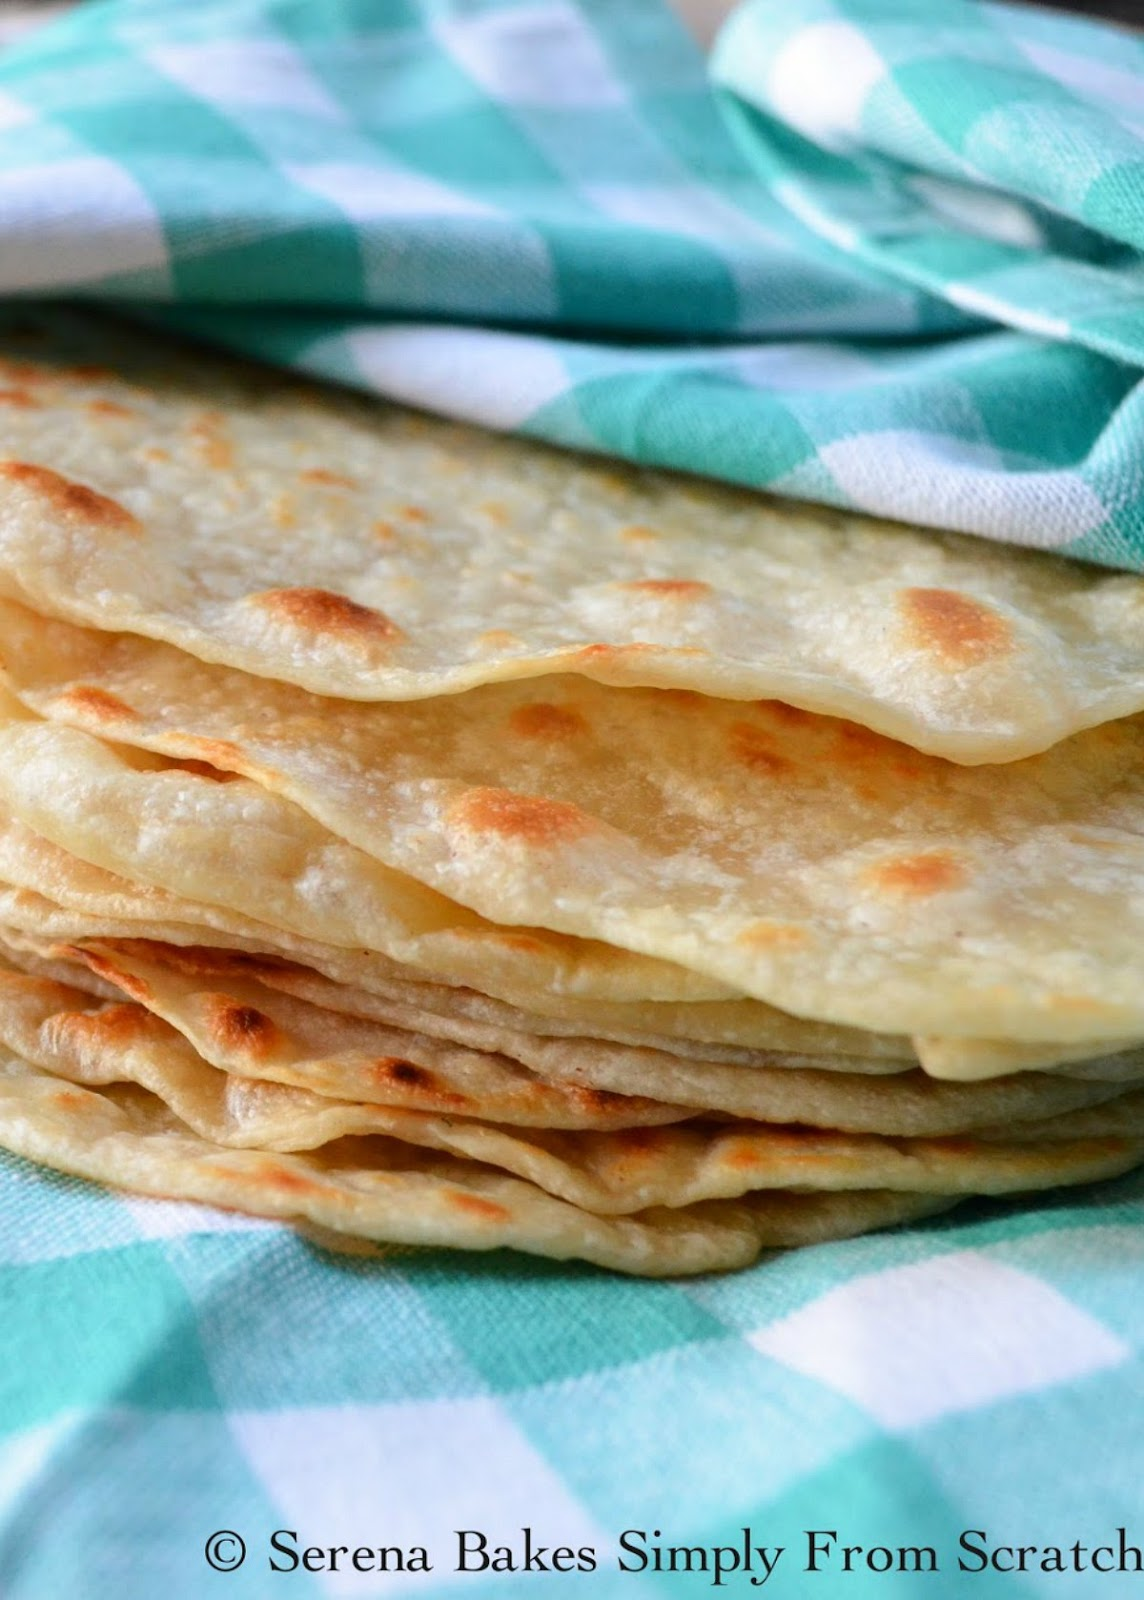 Soft Homemade Flour Tortillas made with butter are absolutely delicious. Soft and tender Flour Tortillas are a favorite for your next Mexican food night. The absolute best Tortillas from scratch. Serena Bakes Simply from Scratch.